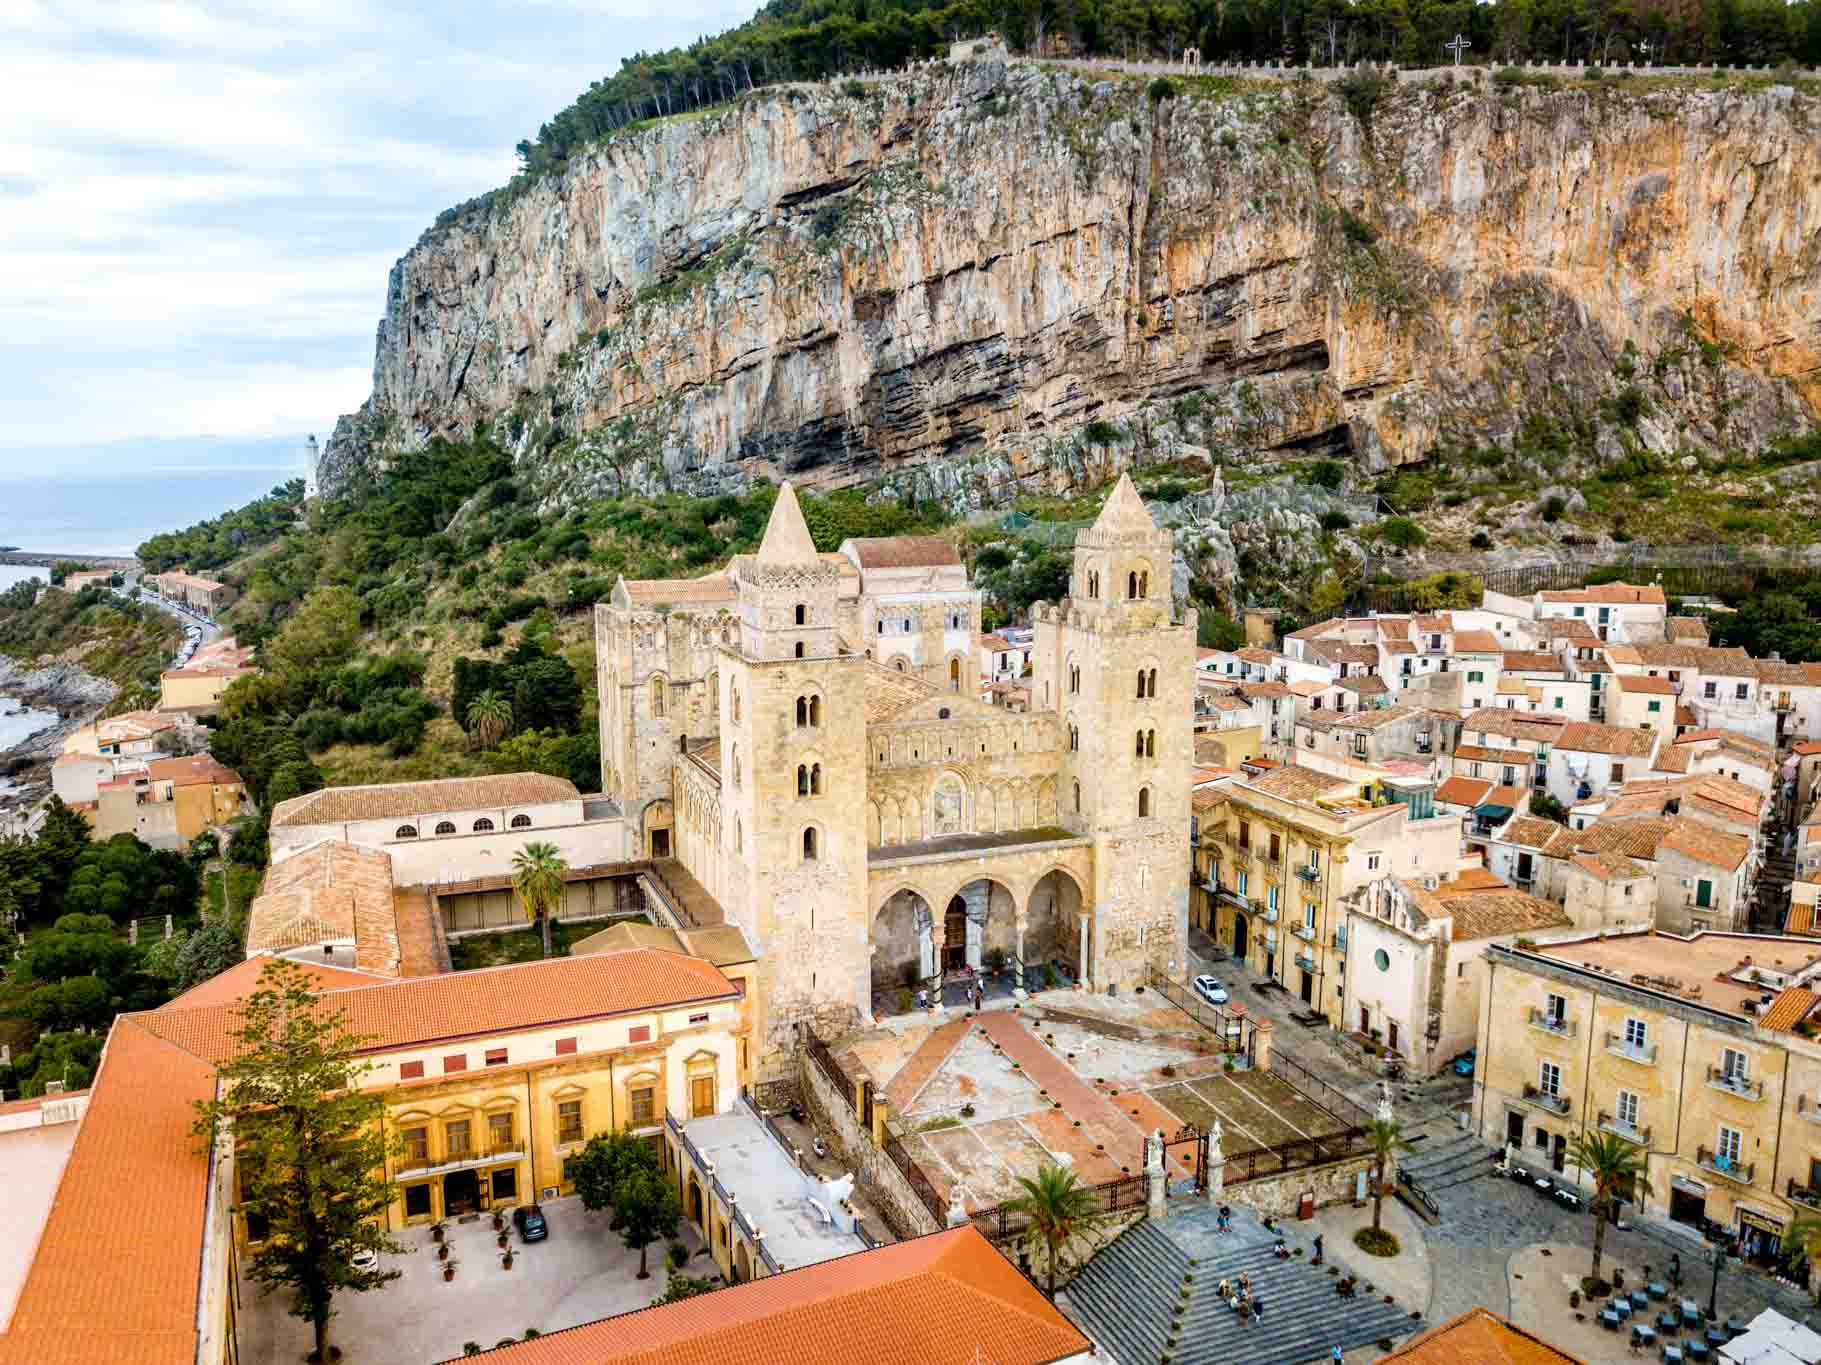 Overhead view of Cefalu cathedral and buildings in front of monolithic rock